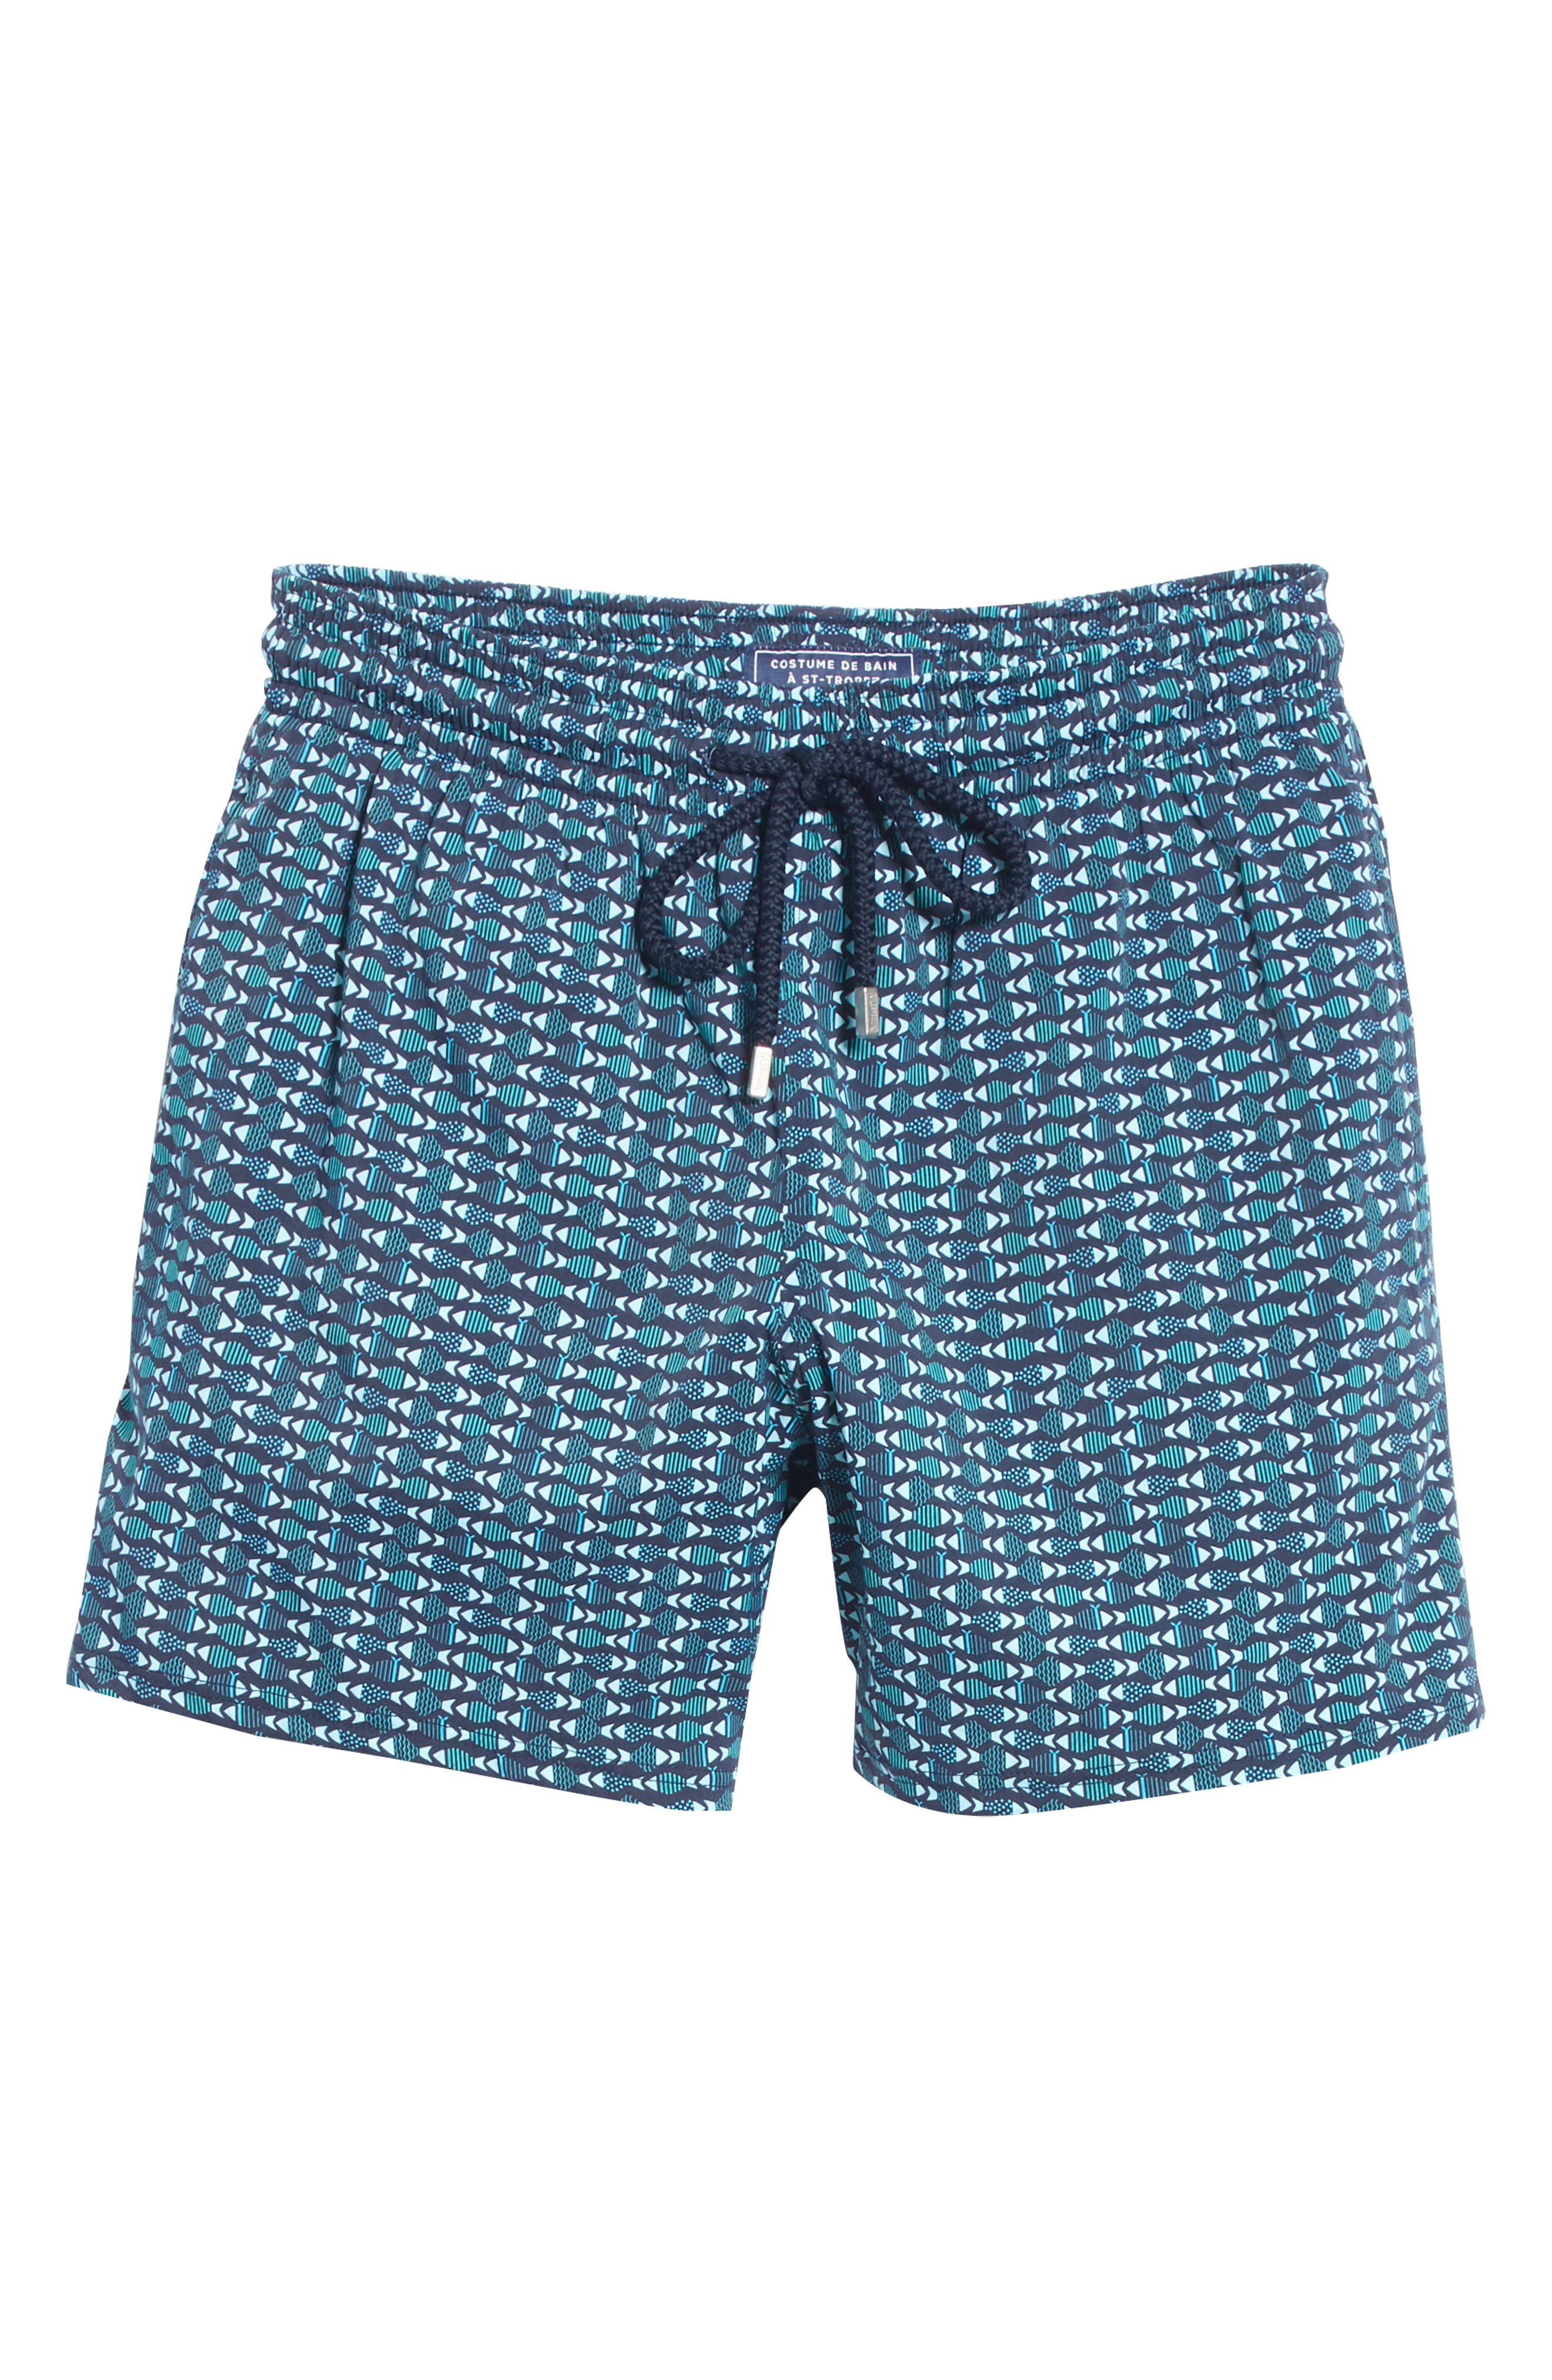 VILEBREQUIN,                             Modernist Fish Print Swim Trunks,                             Alternate thumbnail 6, color,                             NAVY